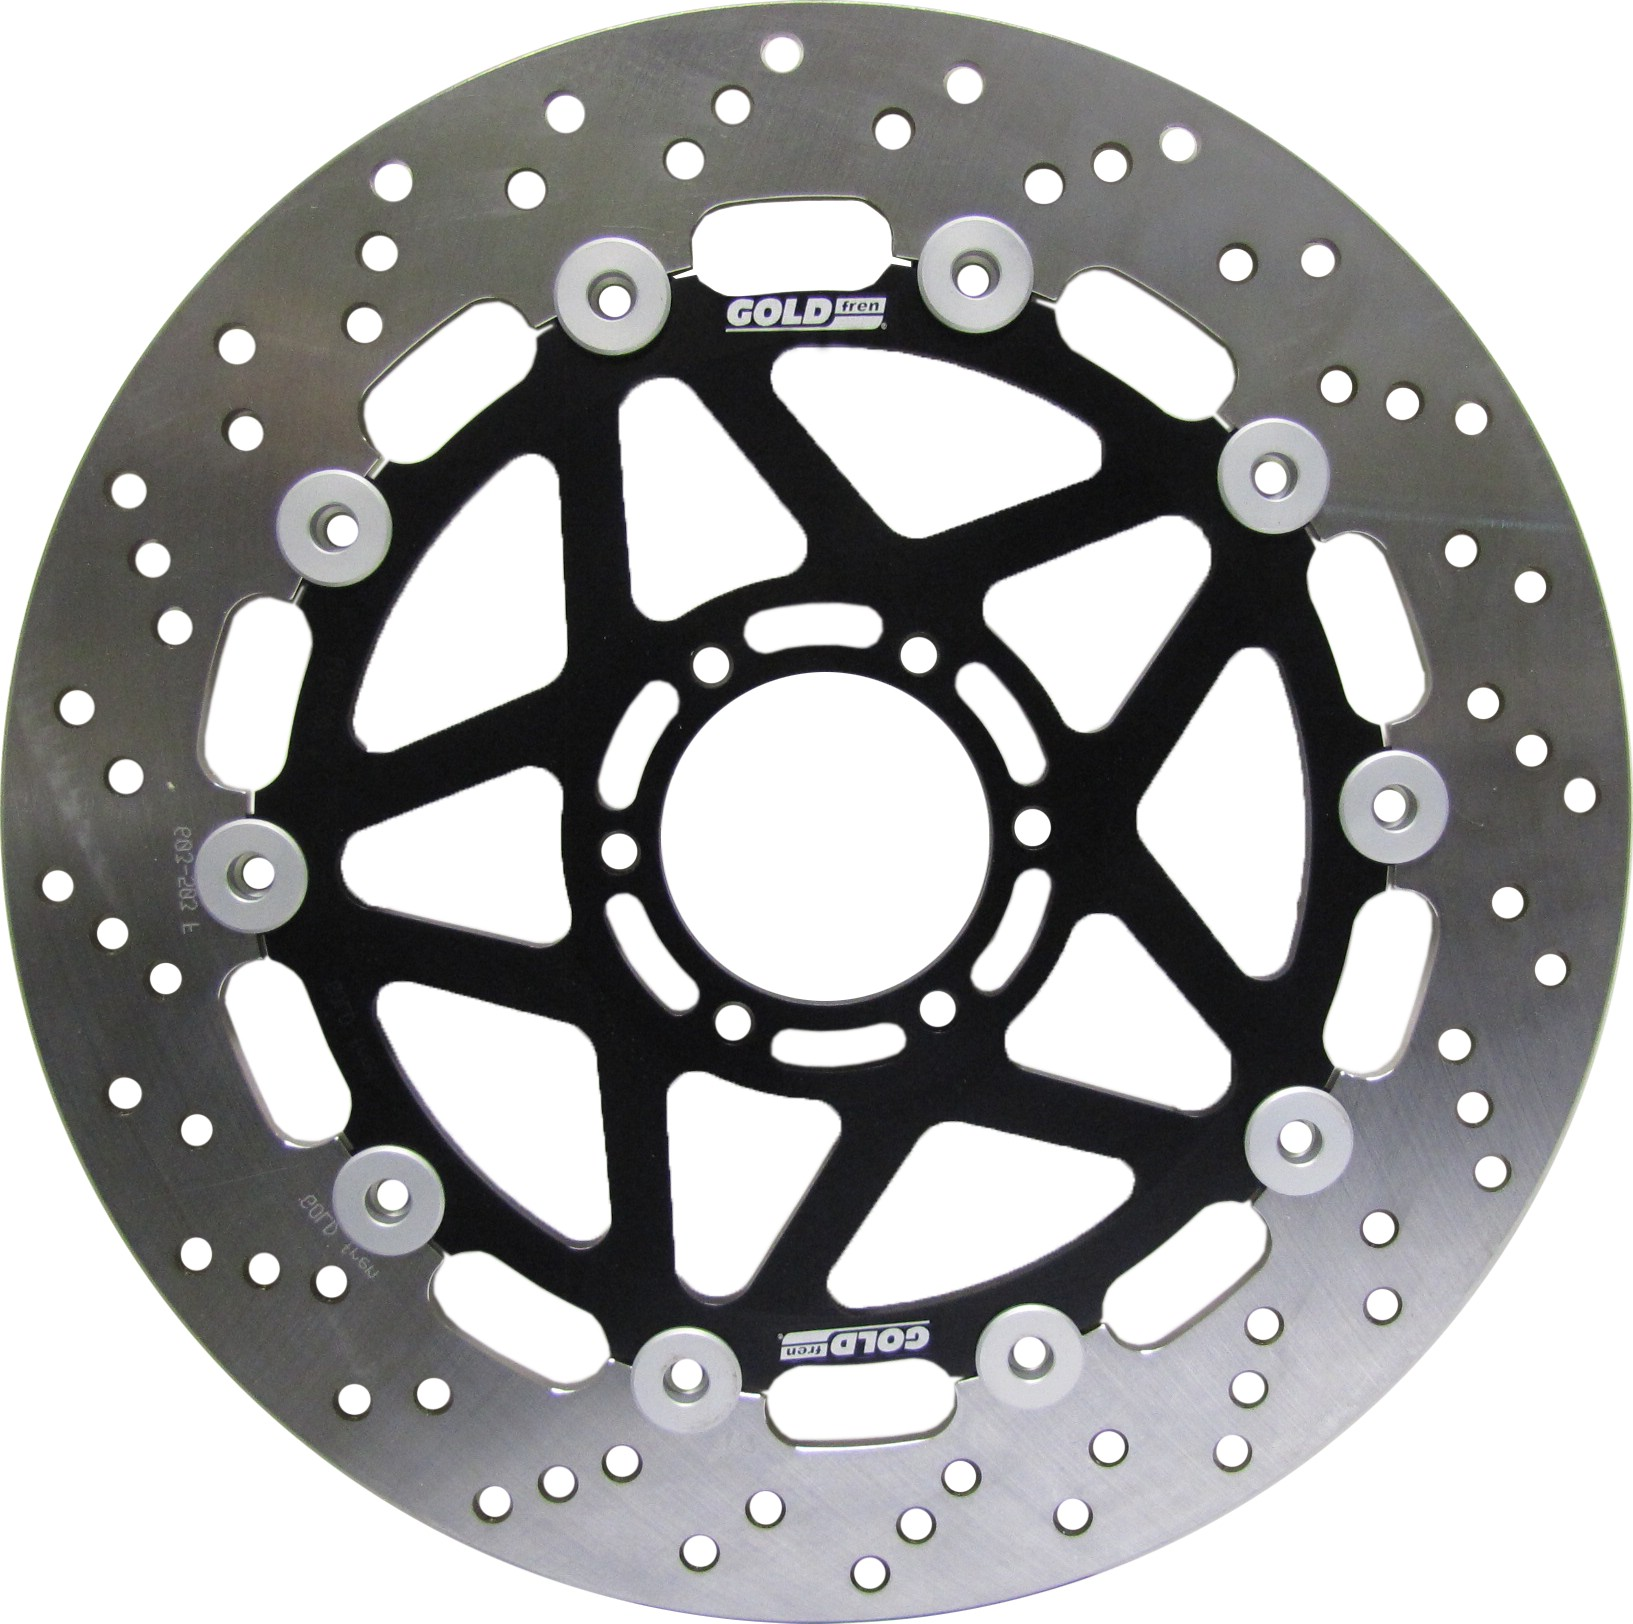 ktm 990 superduke europe 2005 2010 brake disc front right each KTM RC390 ktm 990 superduke europe 2005 2010 brake disc front right each 1 of 3free shipping see more